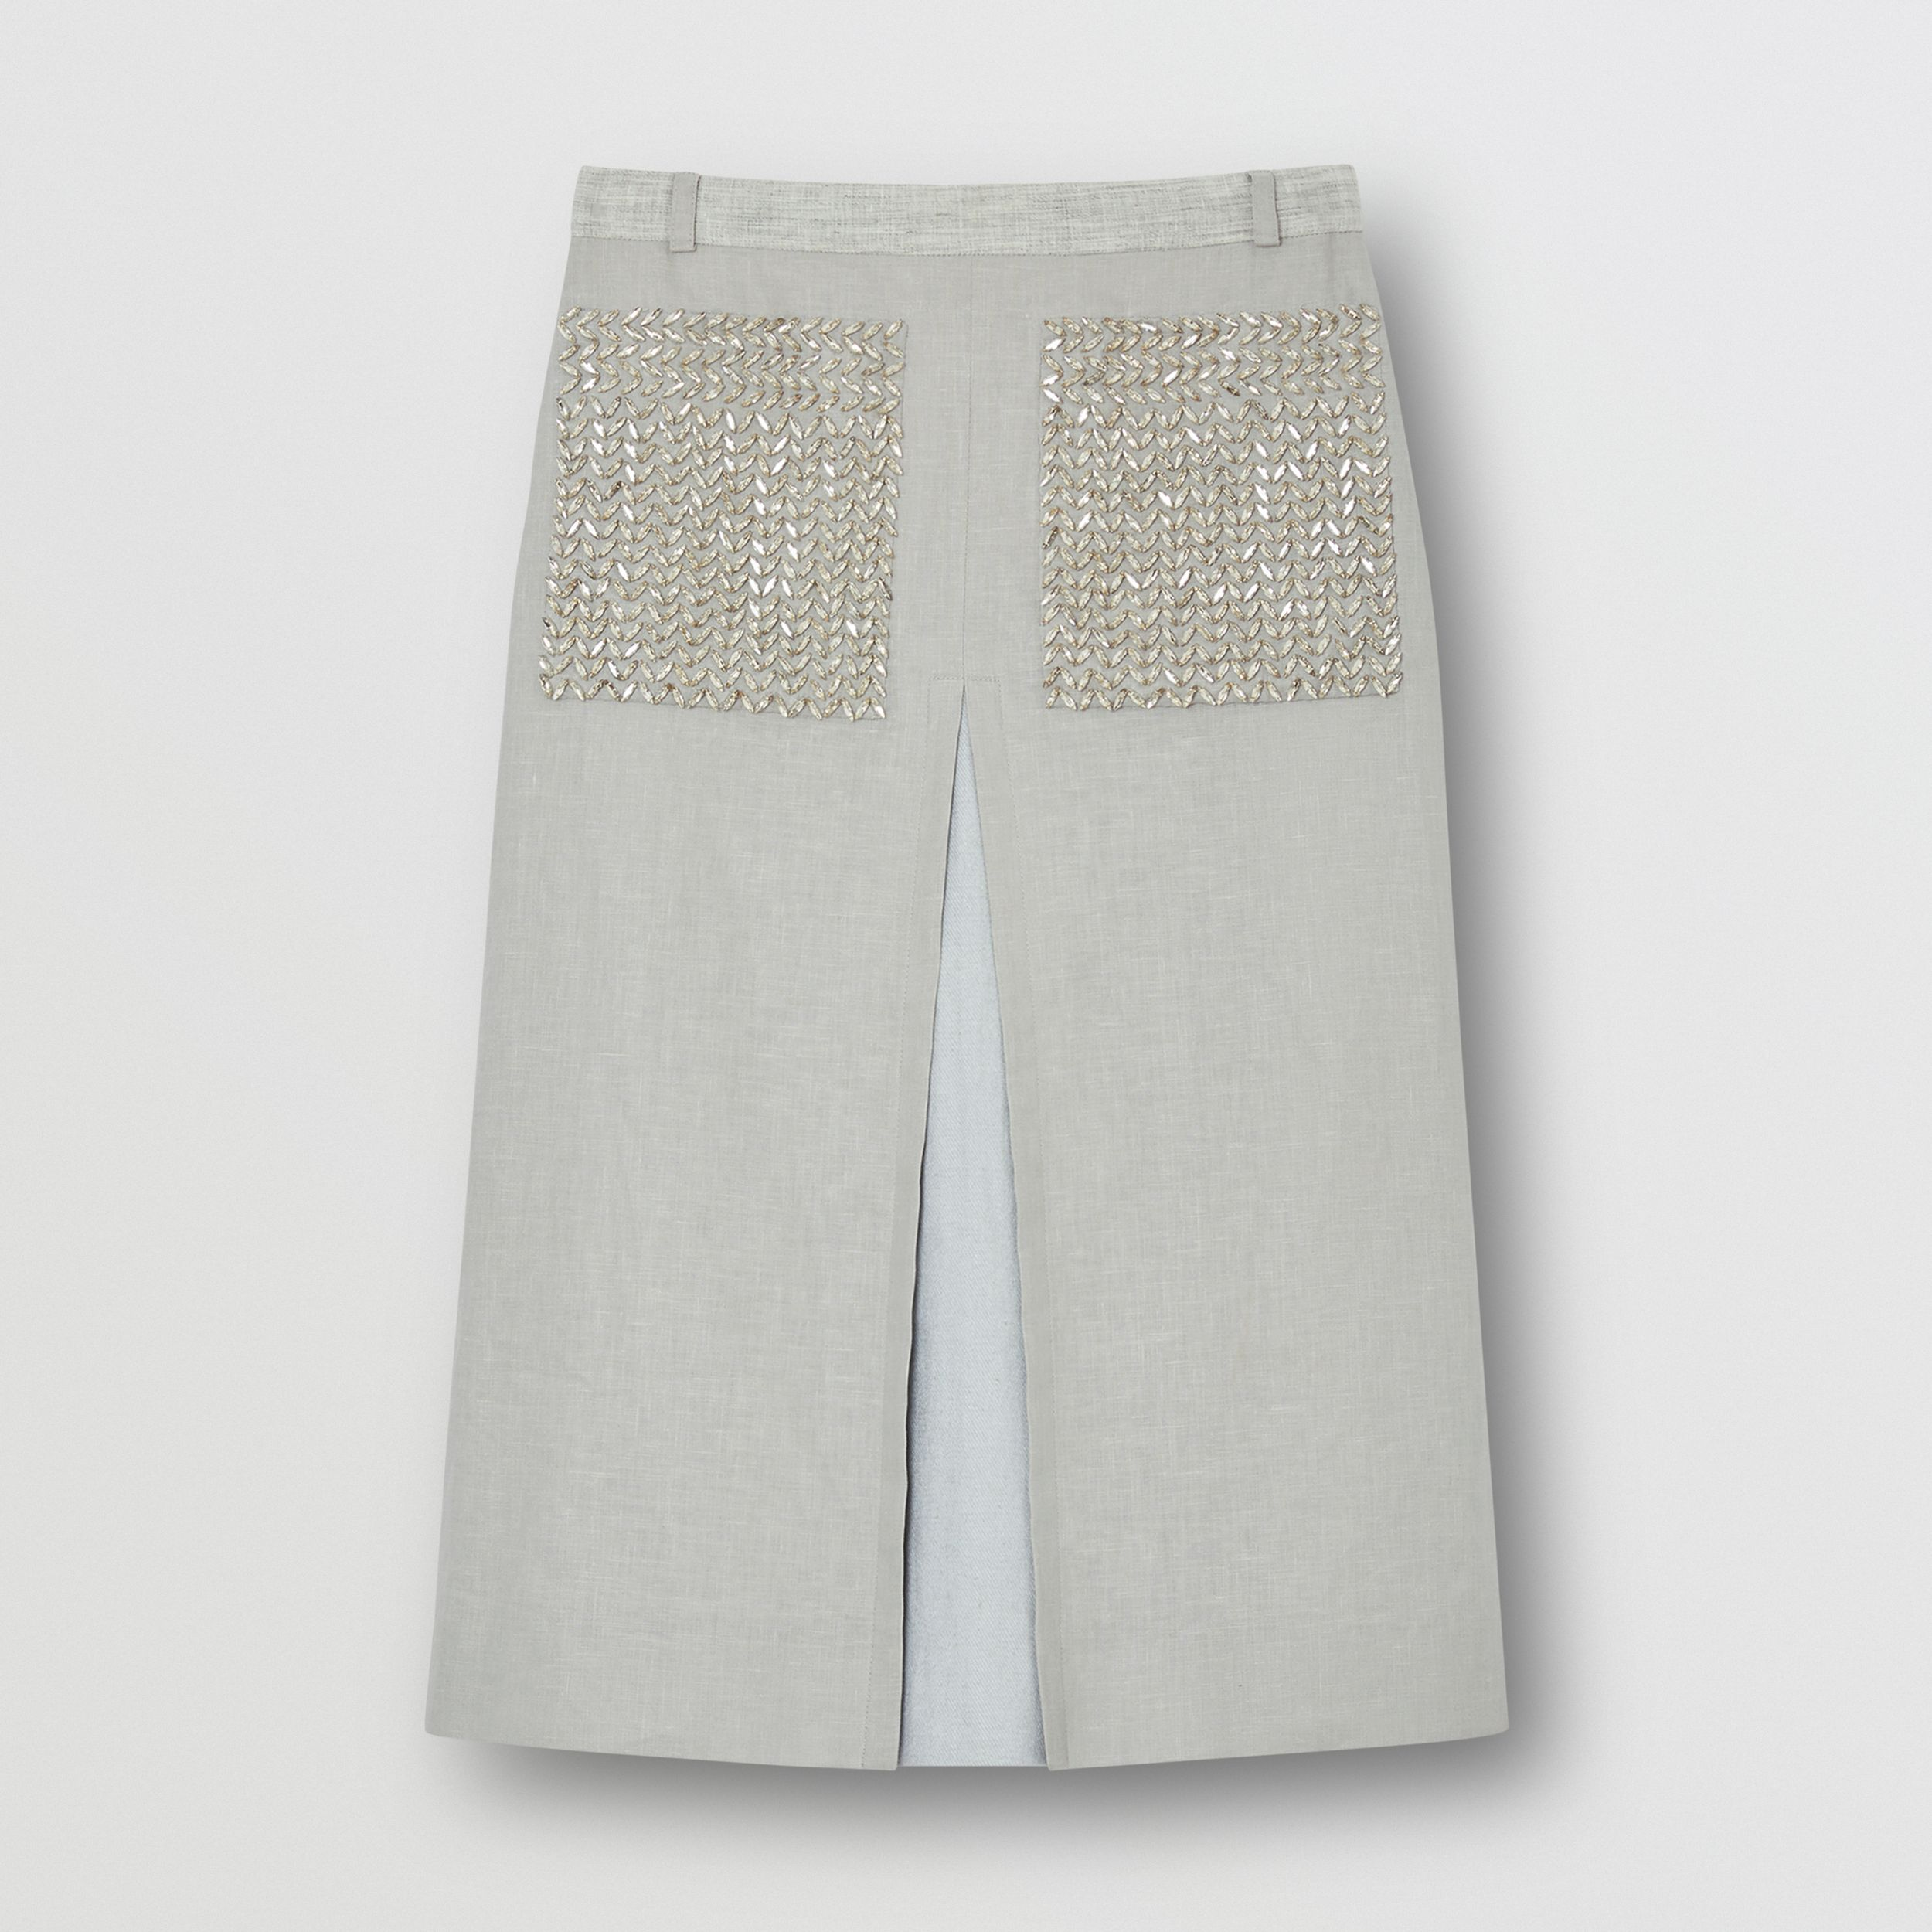 Crystal Embroidered Box-pleat Detail Linen A-line Skirt in Grey Melange - Women | Burberry - 4